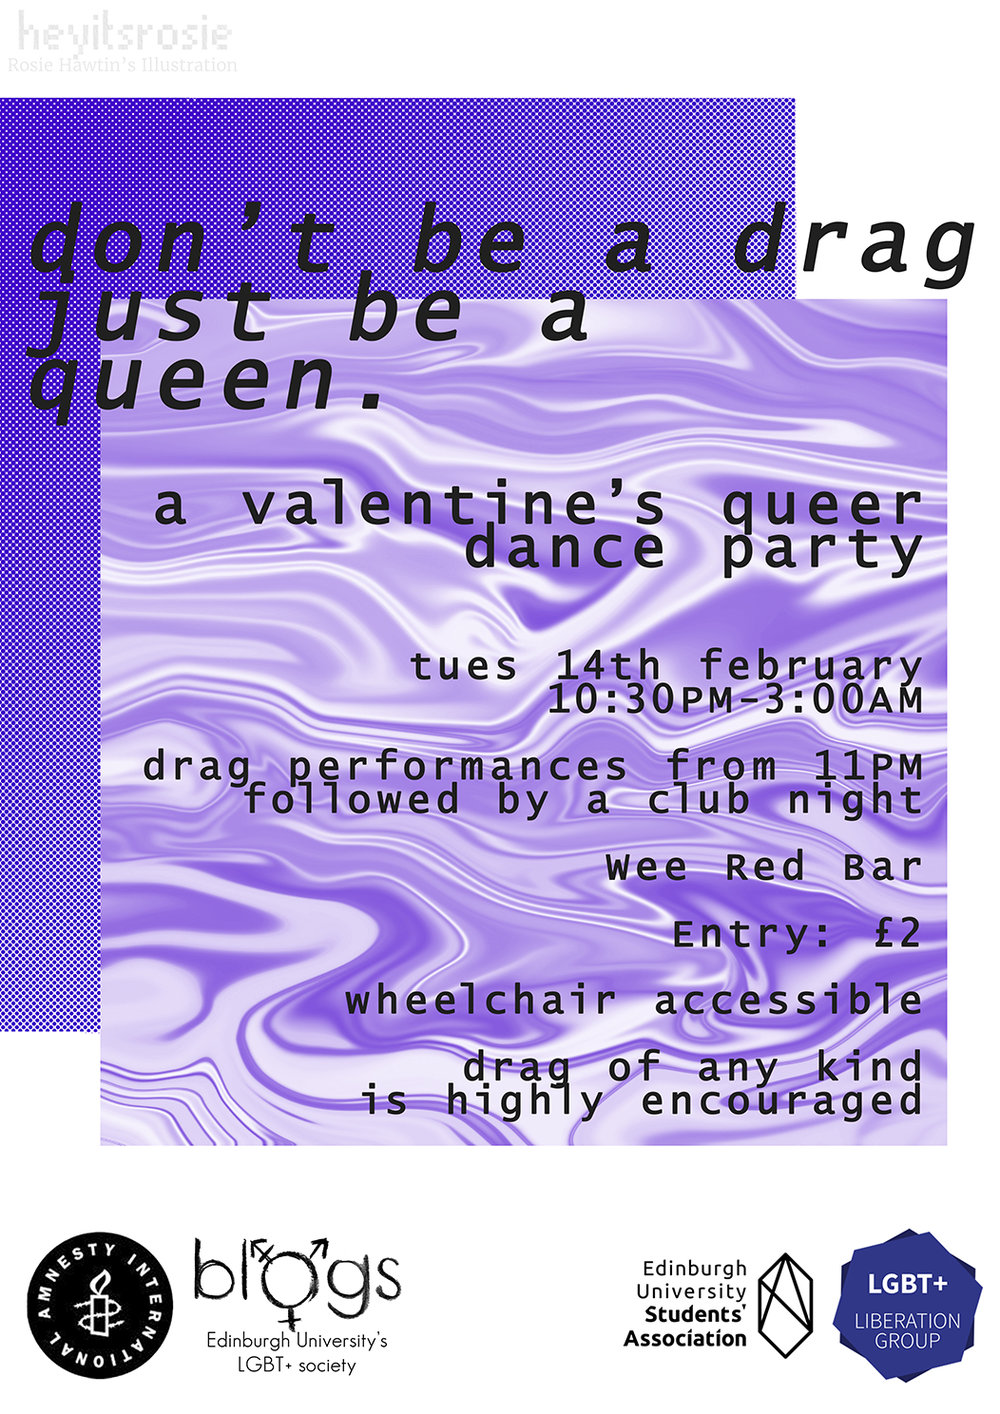 Don't Be A Drag Poster